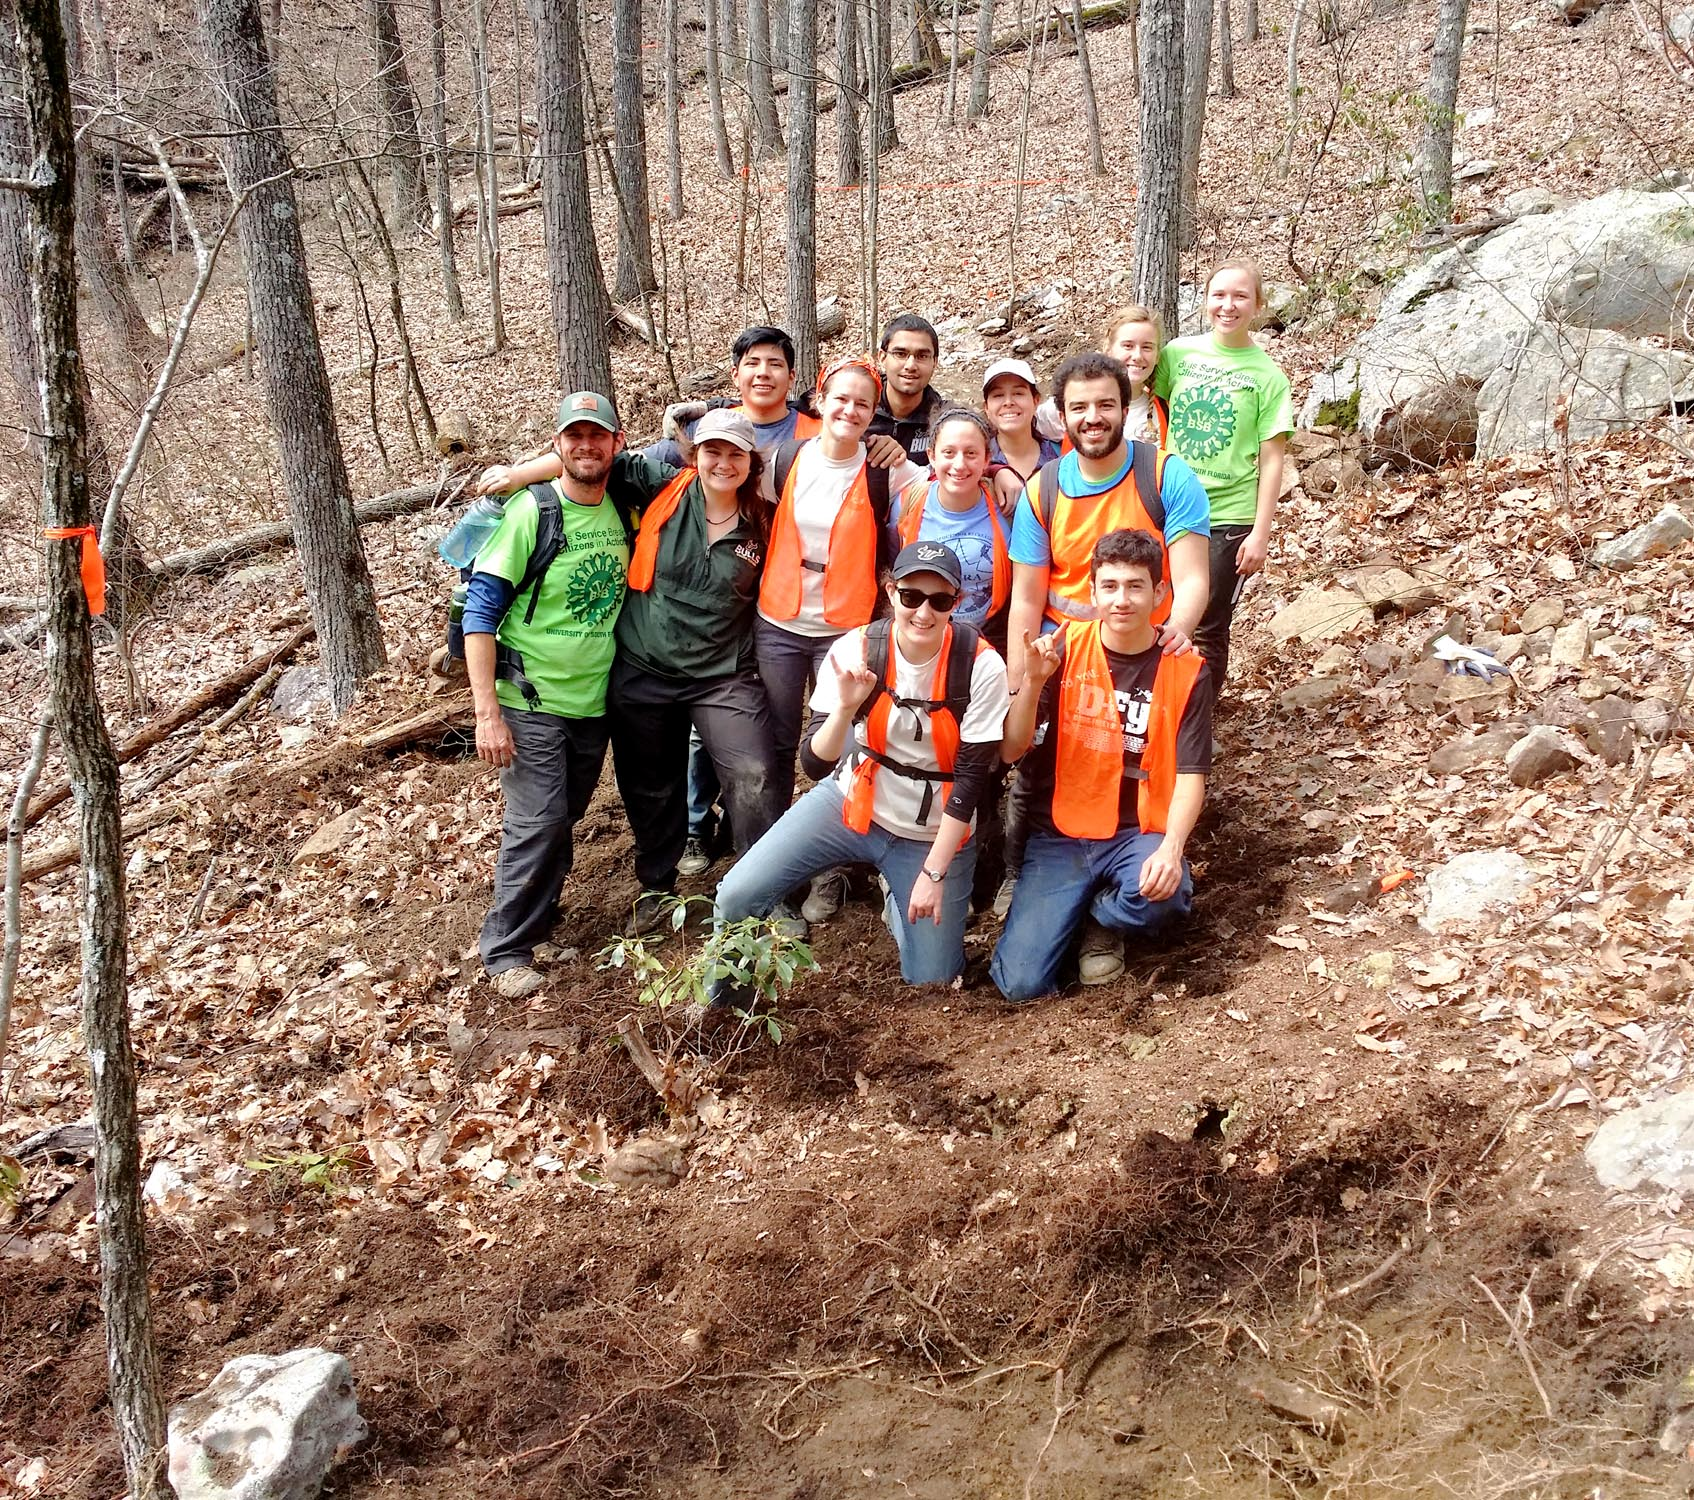 University of South Florida at the end of trail work ASB 2018, Week 2. Behind them ASB Week 3 continues to the crossing of Basin Branch in the background. (Richie)